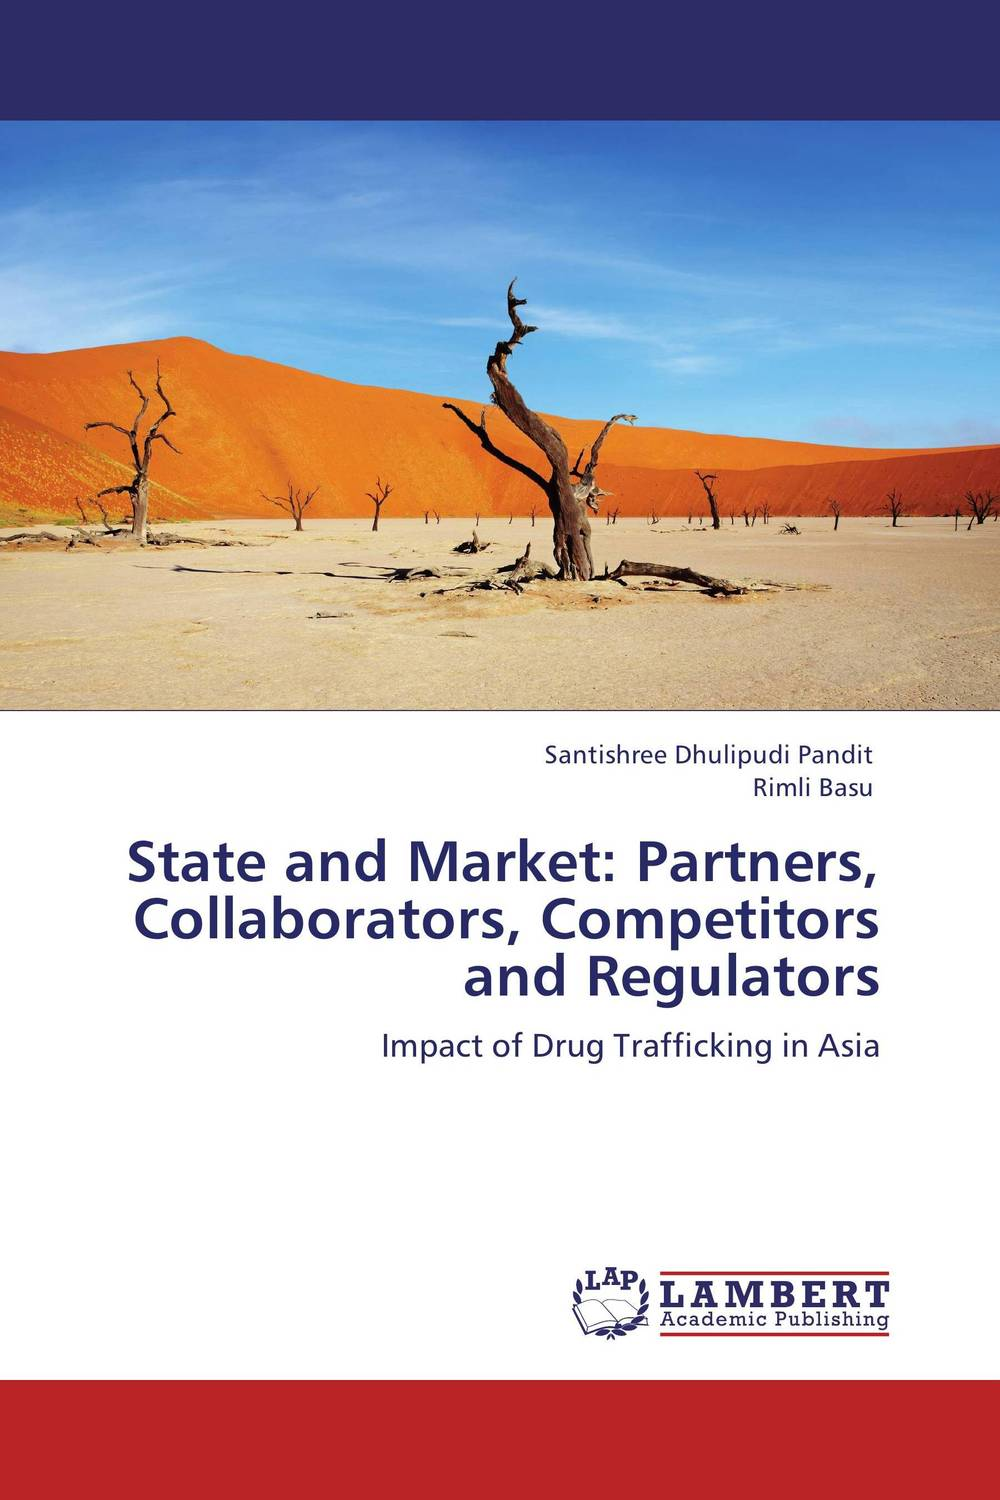 State and Market: Partners, Collaborators, Competitors and Regulators partners lp cd